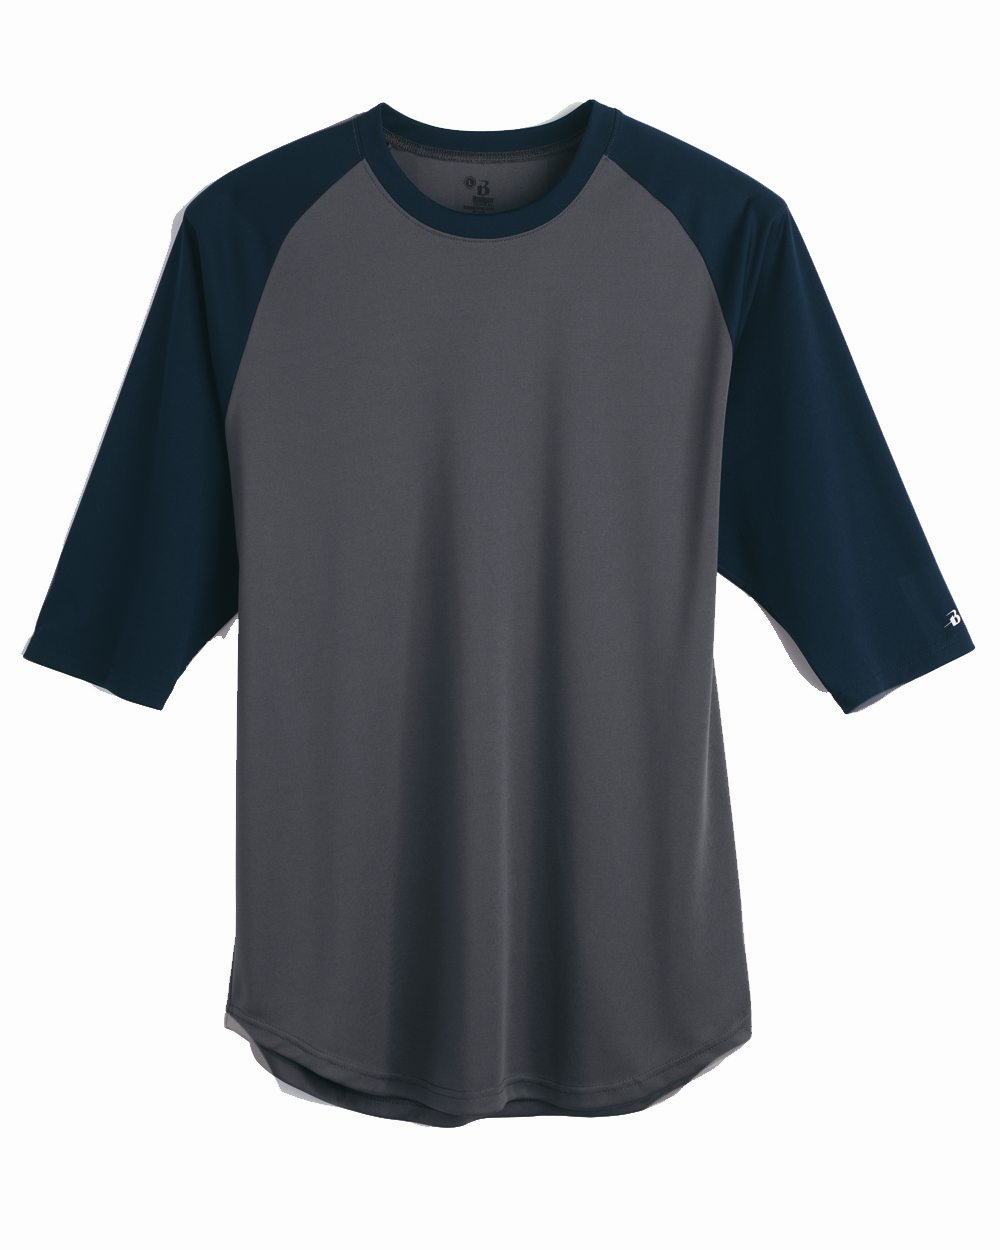 Badger 4133 - B-Core 3/4 Sleeve Baseball Undershirt